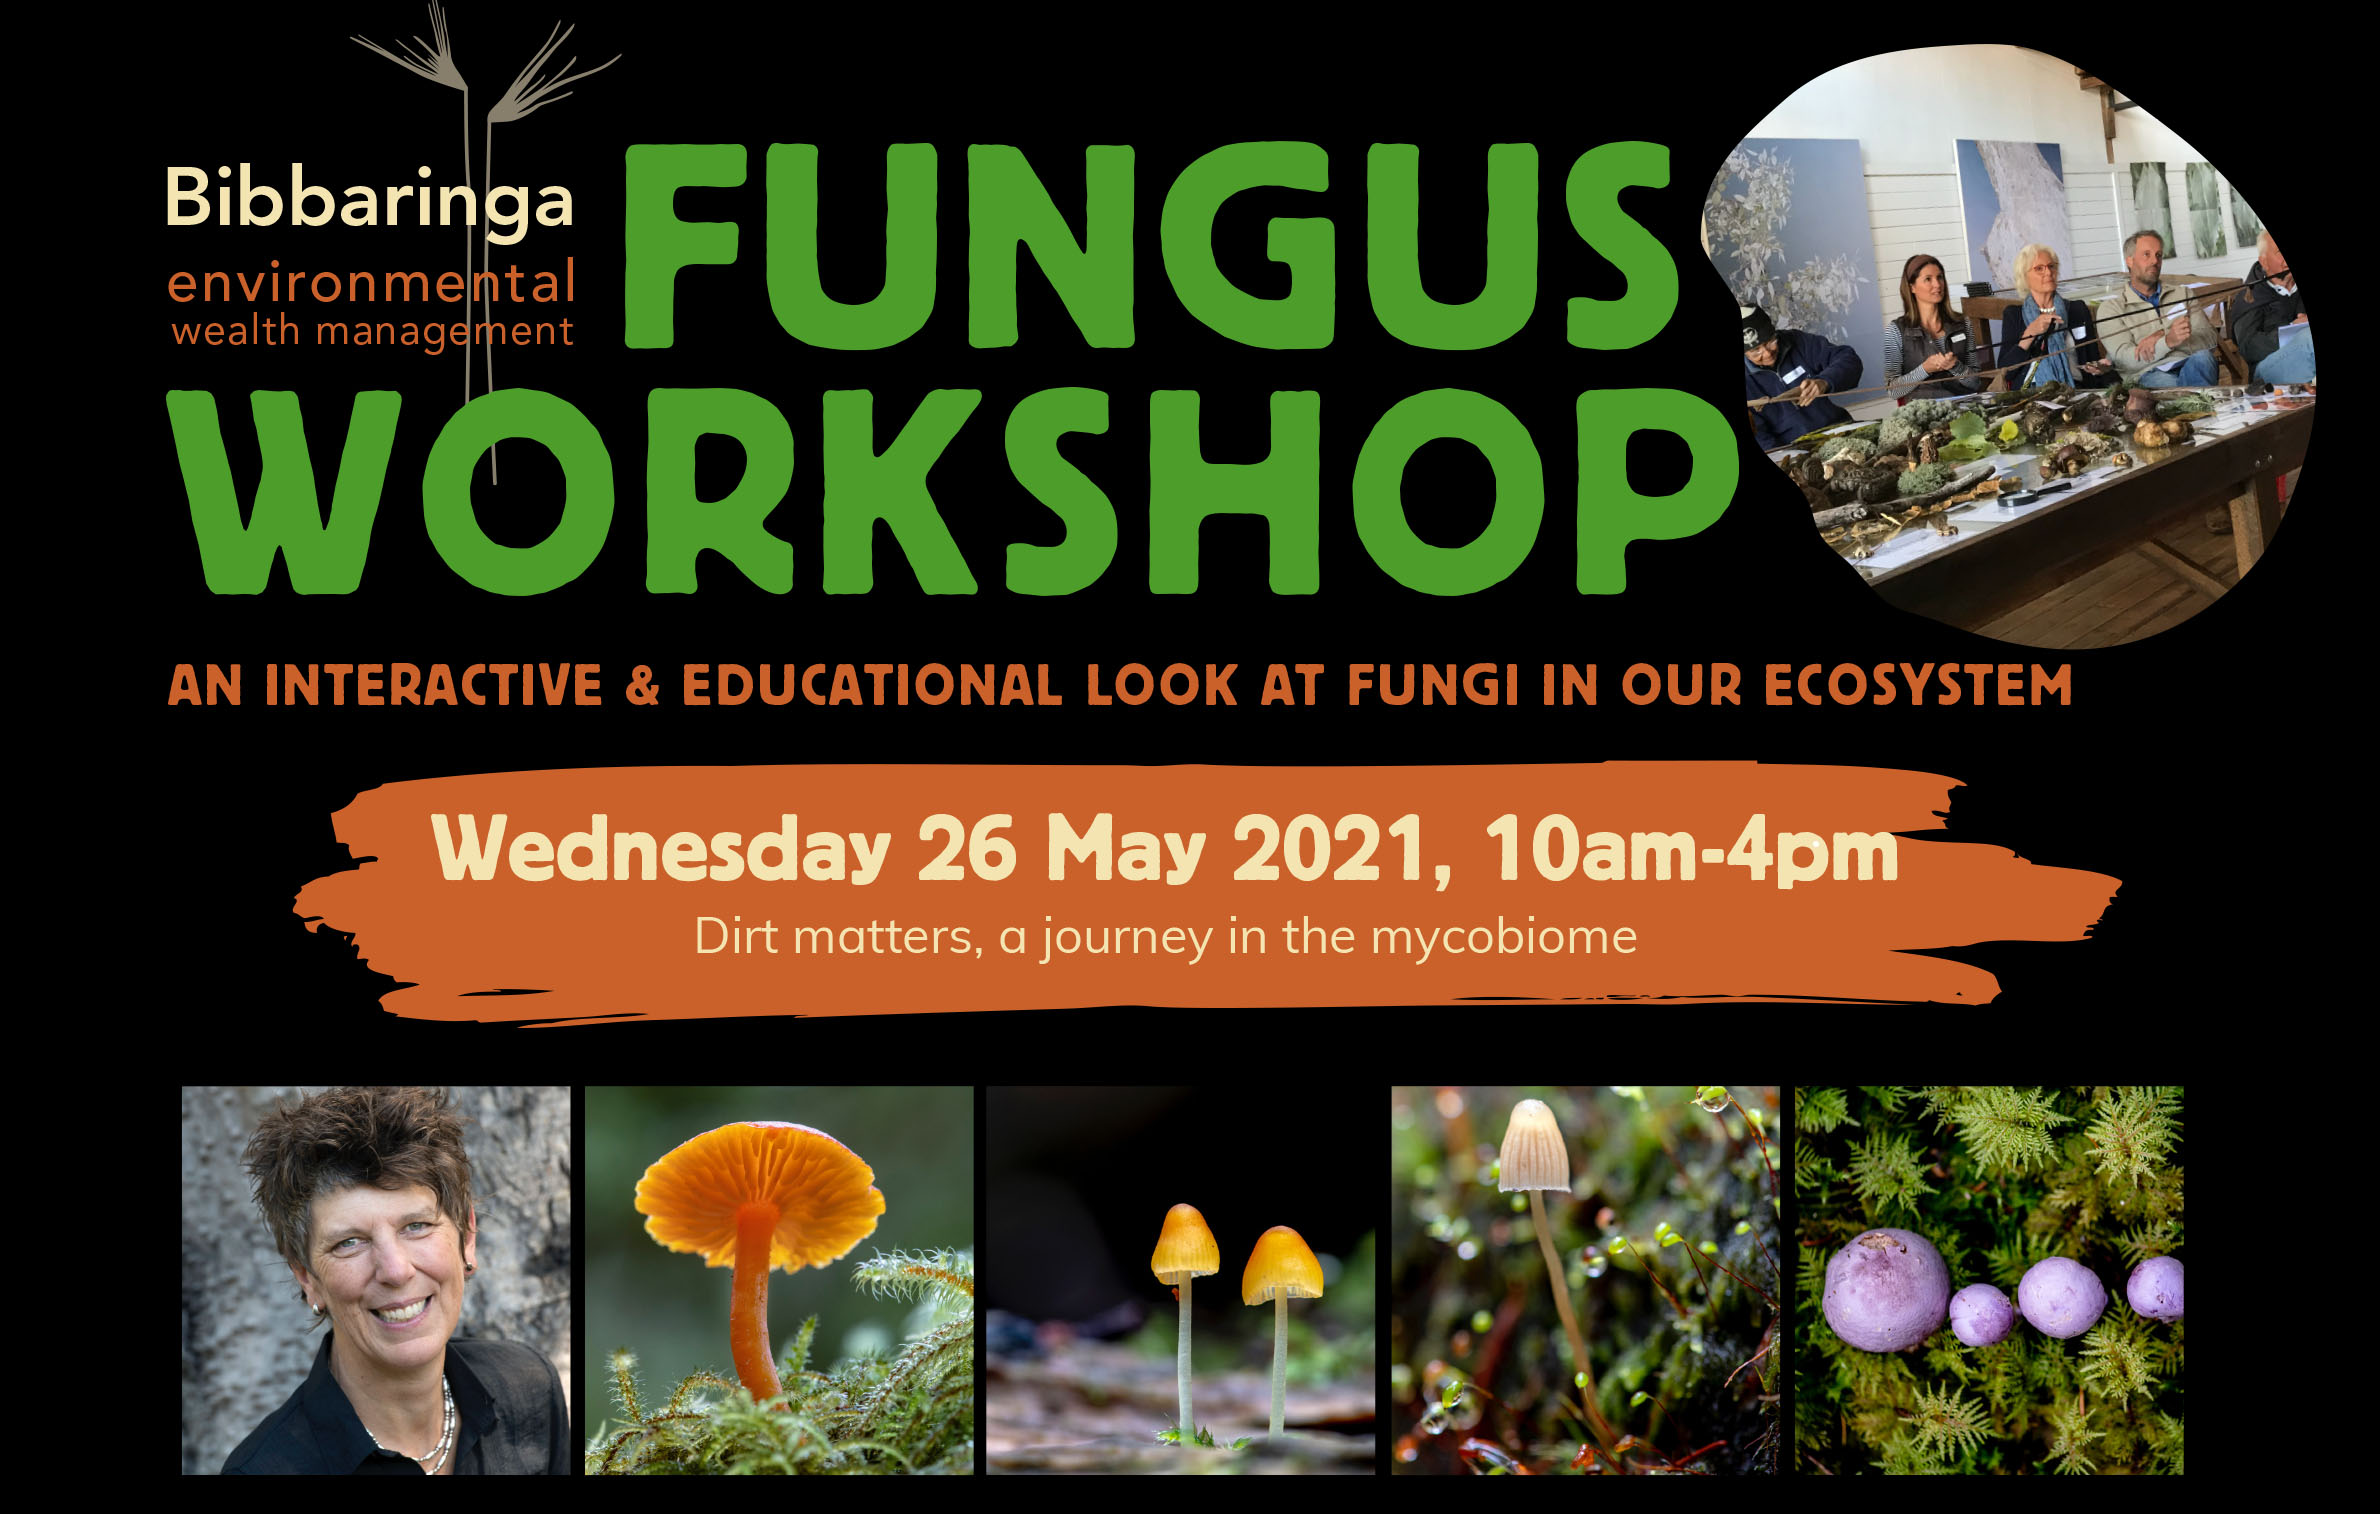 Fungus Workshop at Bibbaringa Farm